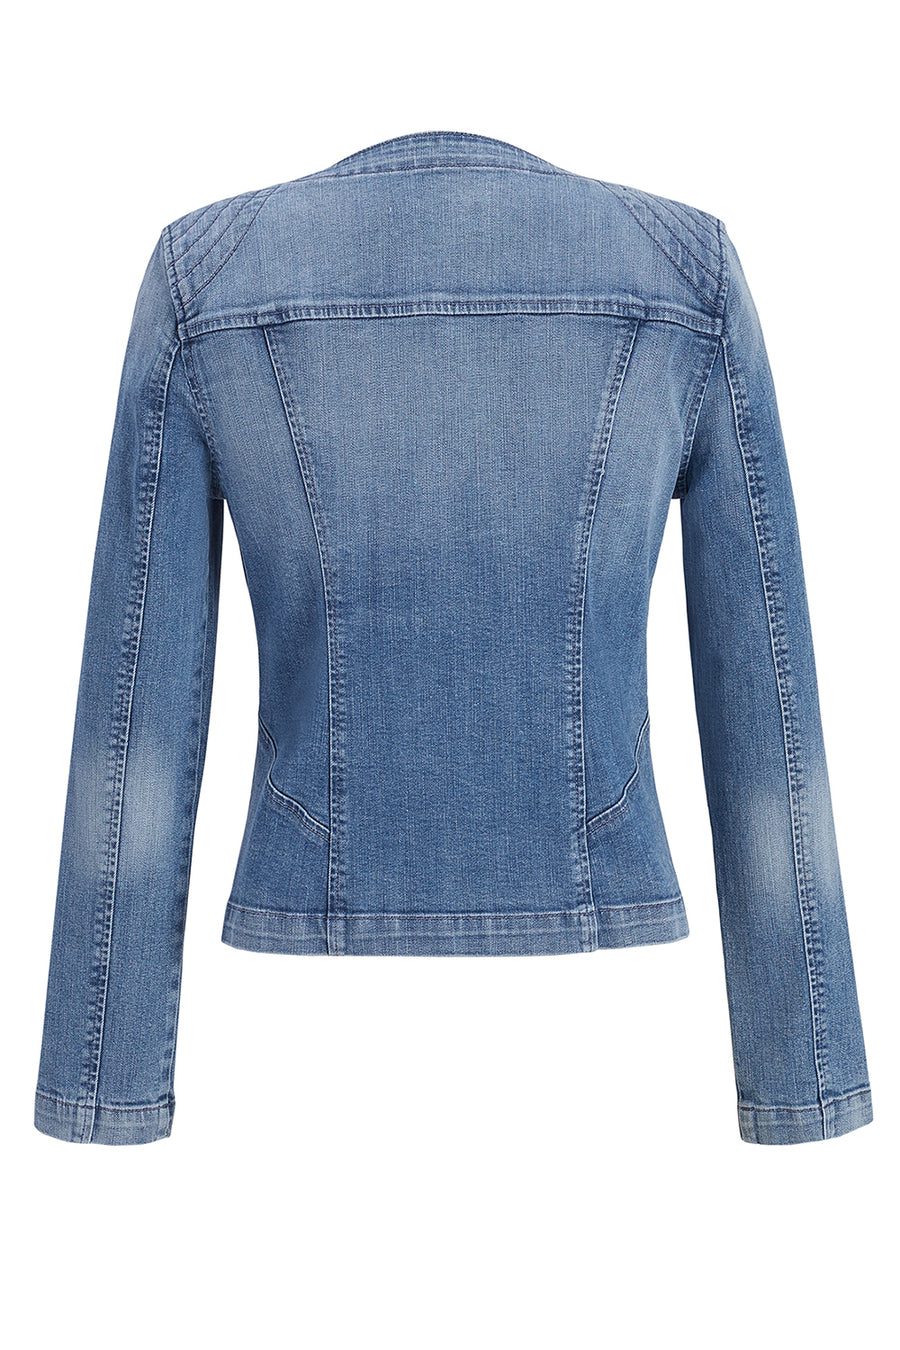 Melissa Denim Zip Up Jacket - level99jeans